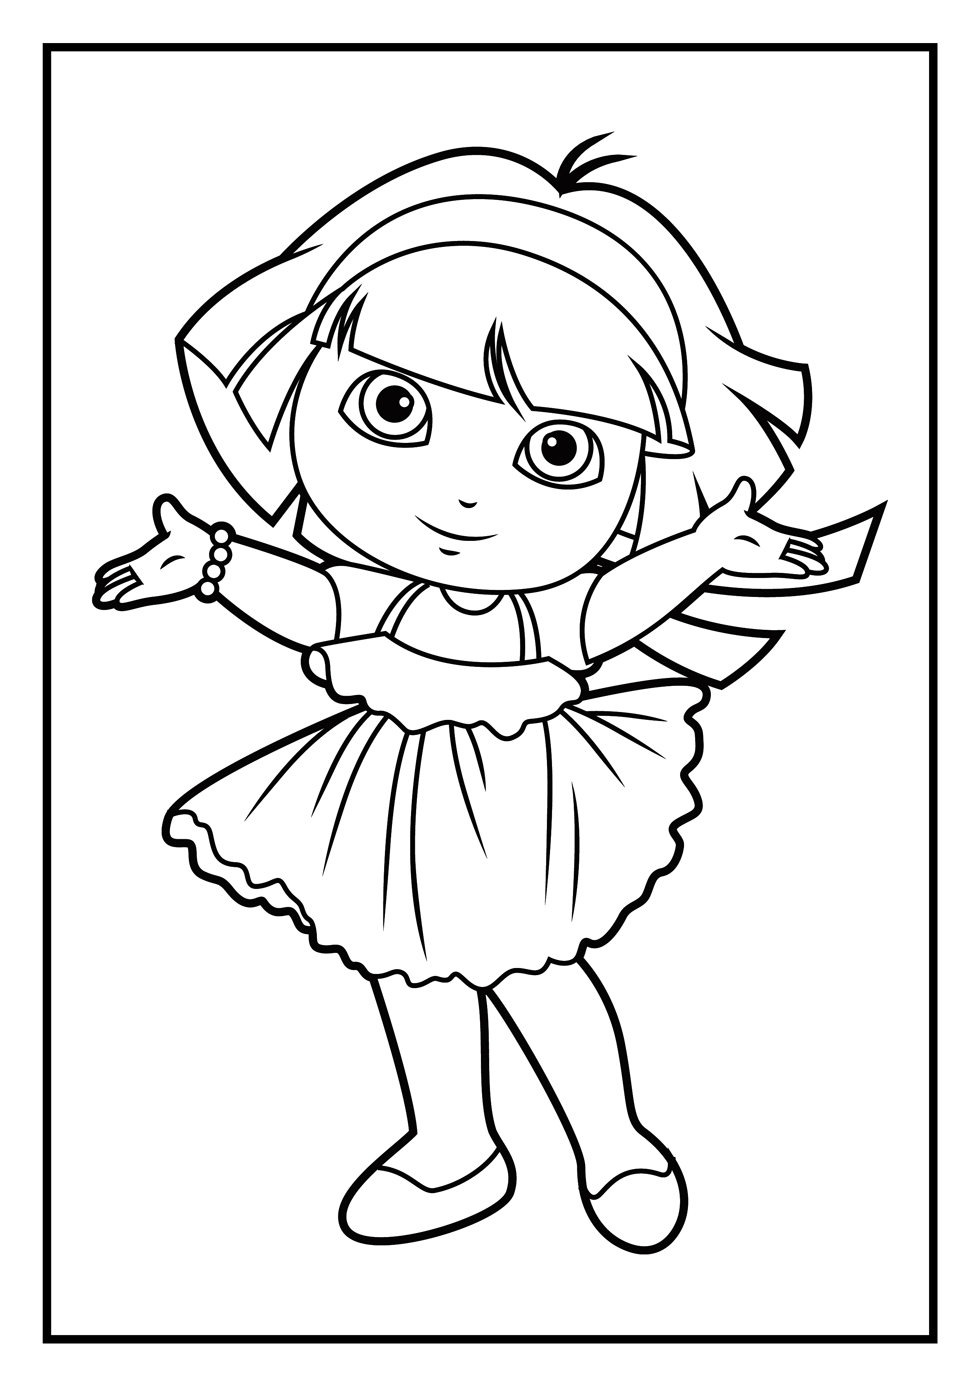 dora coloring page - Selo.l-ink.co